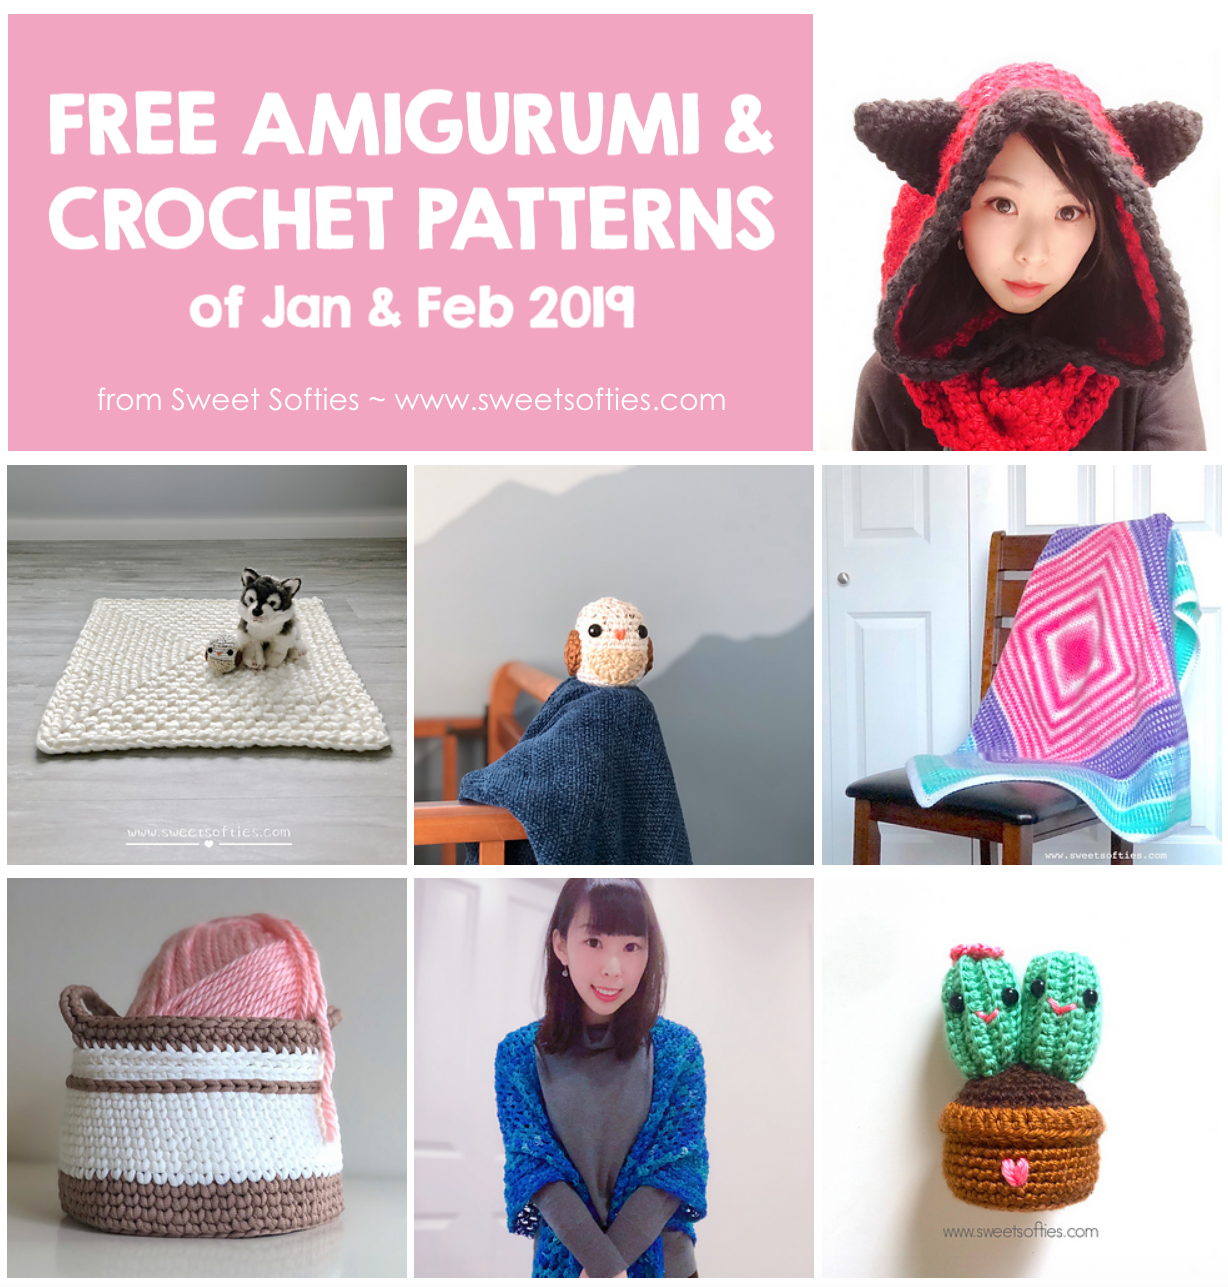 Free Sweet Softies Patterns (Jan & Feb 2019) Free amigurumi crochet patterns by from January and February 2019 <3 Tags: